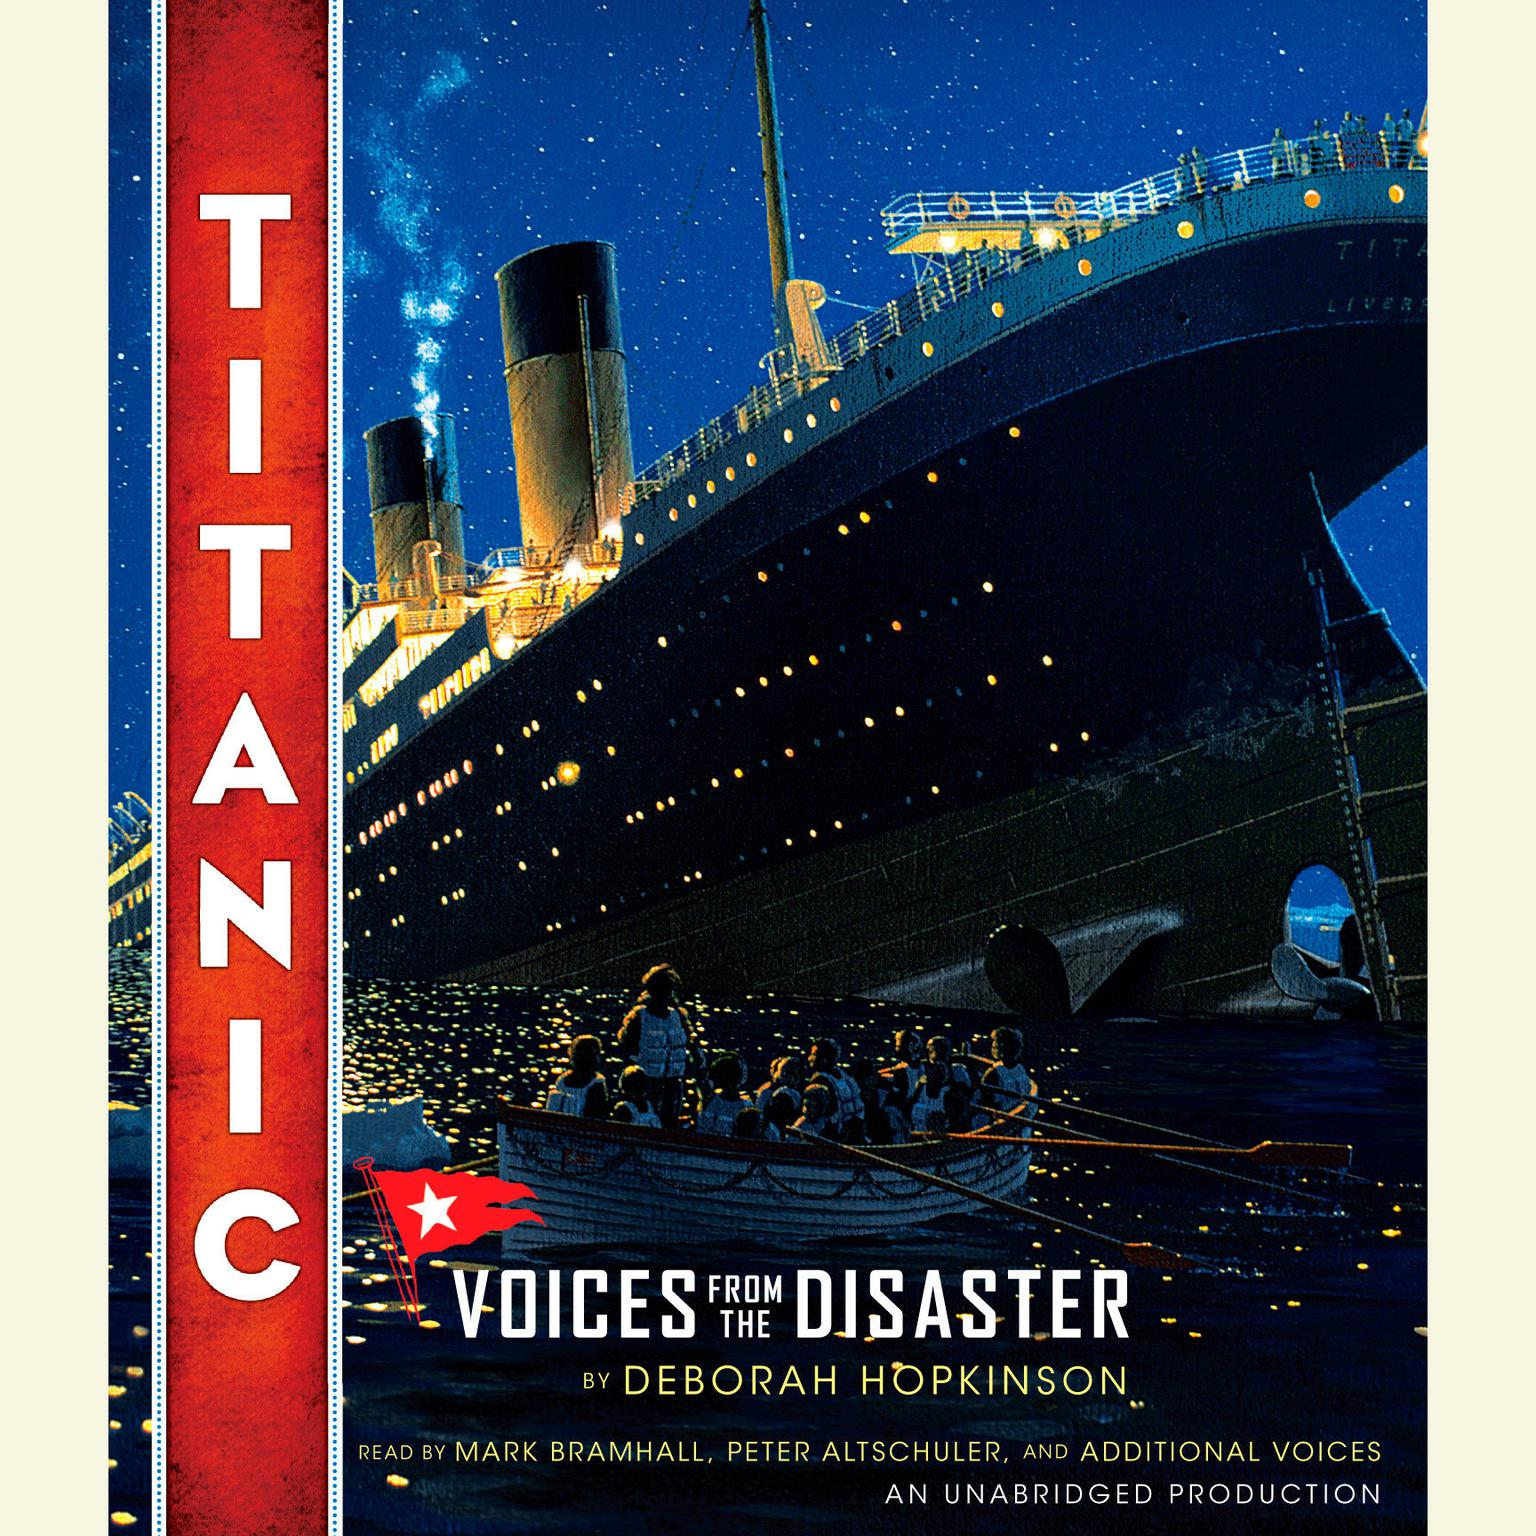 Printable Titanic: Voices From the Disaster: Voices from the Disaster Audiobook Cover Art